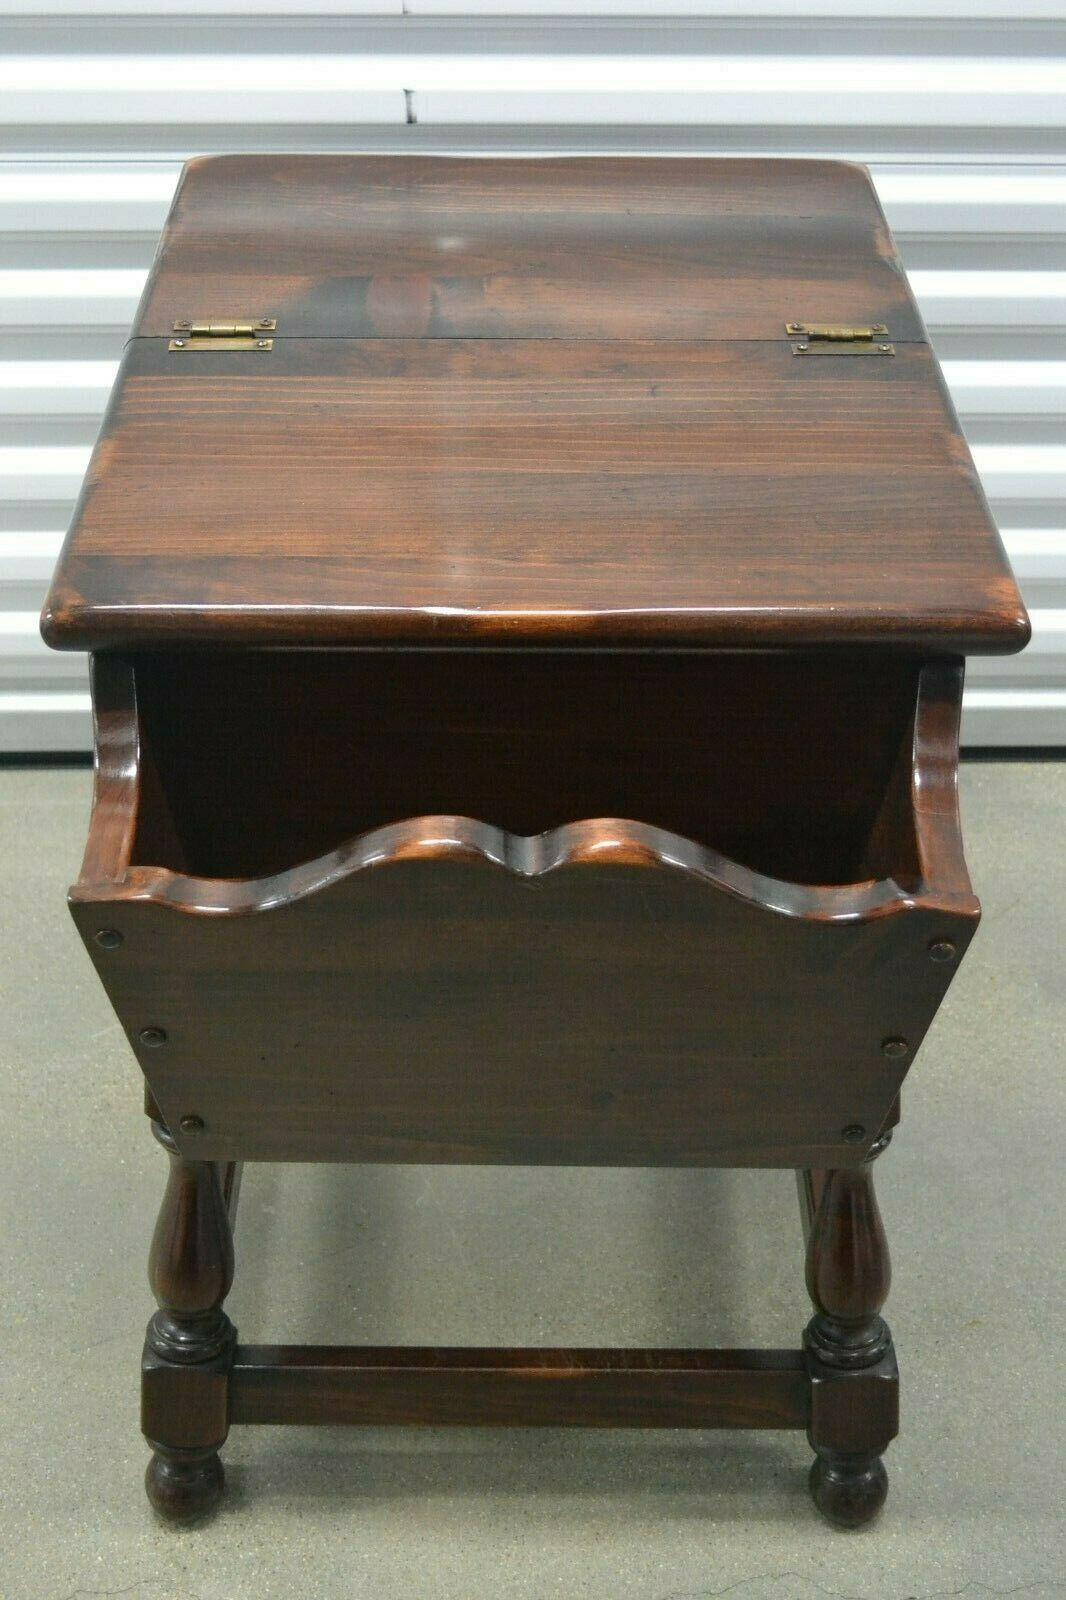 ethan allen antiqued pine old tavern dough box end table for tables norton secured powered verisign american furniture brands magnussen cranfill coffee gaines collection wicker